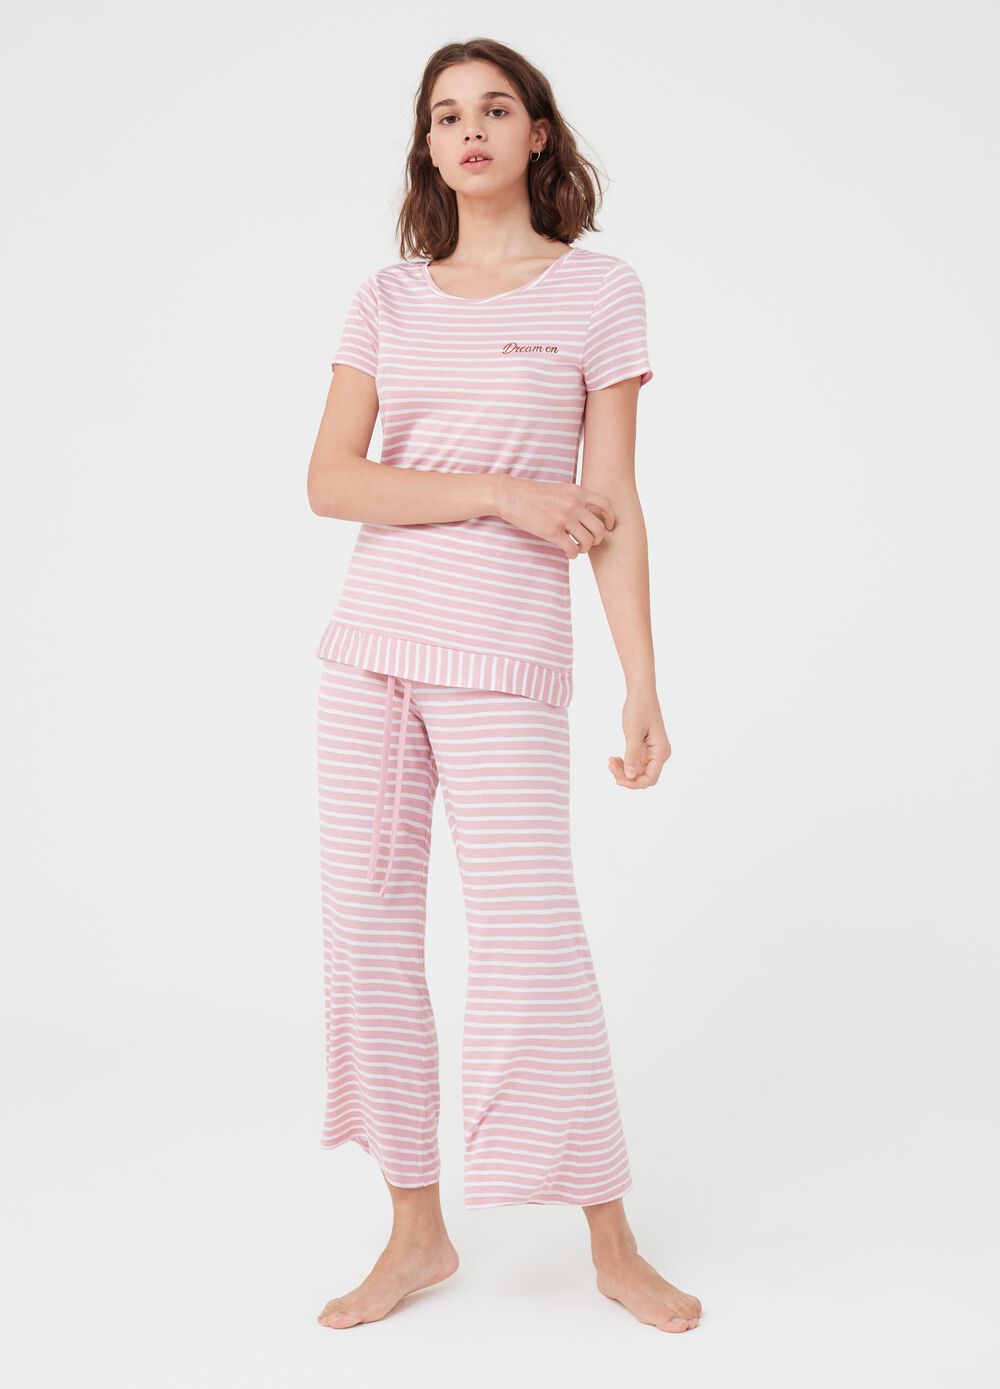 Yarn-dyed striped pyjamas with print